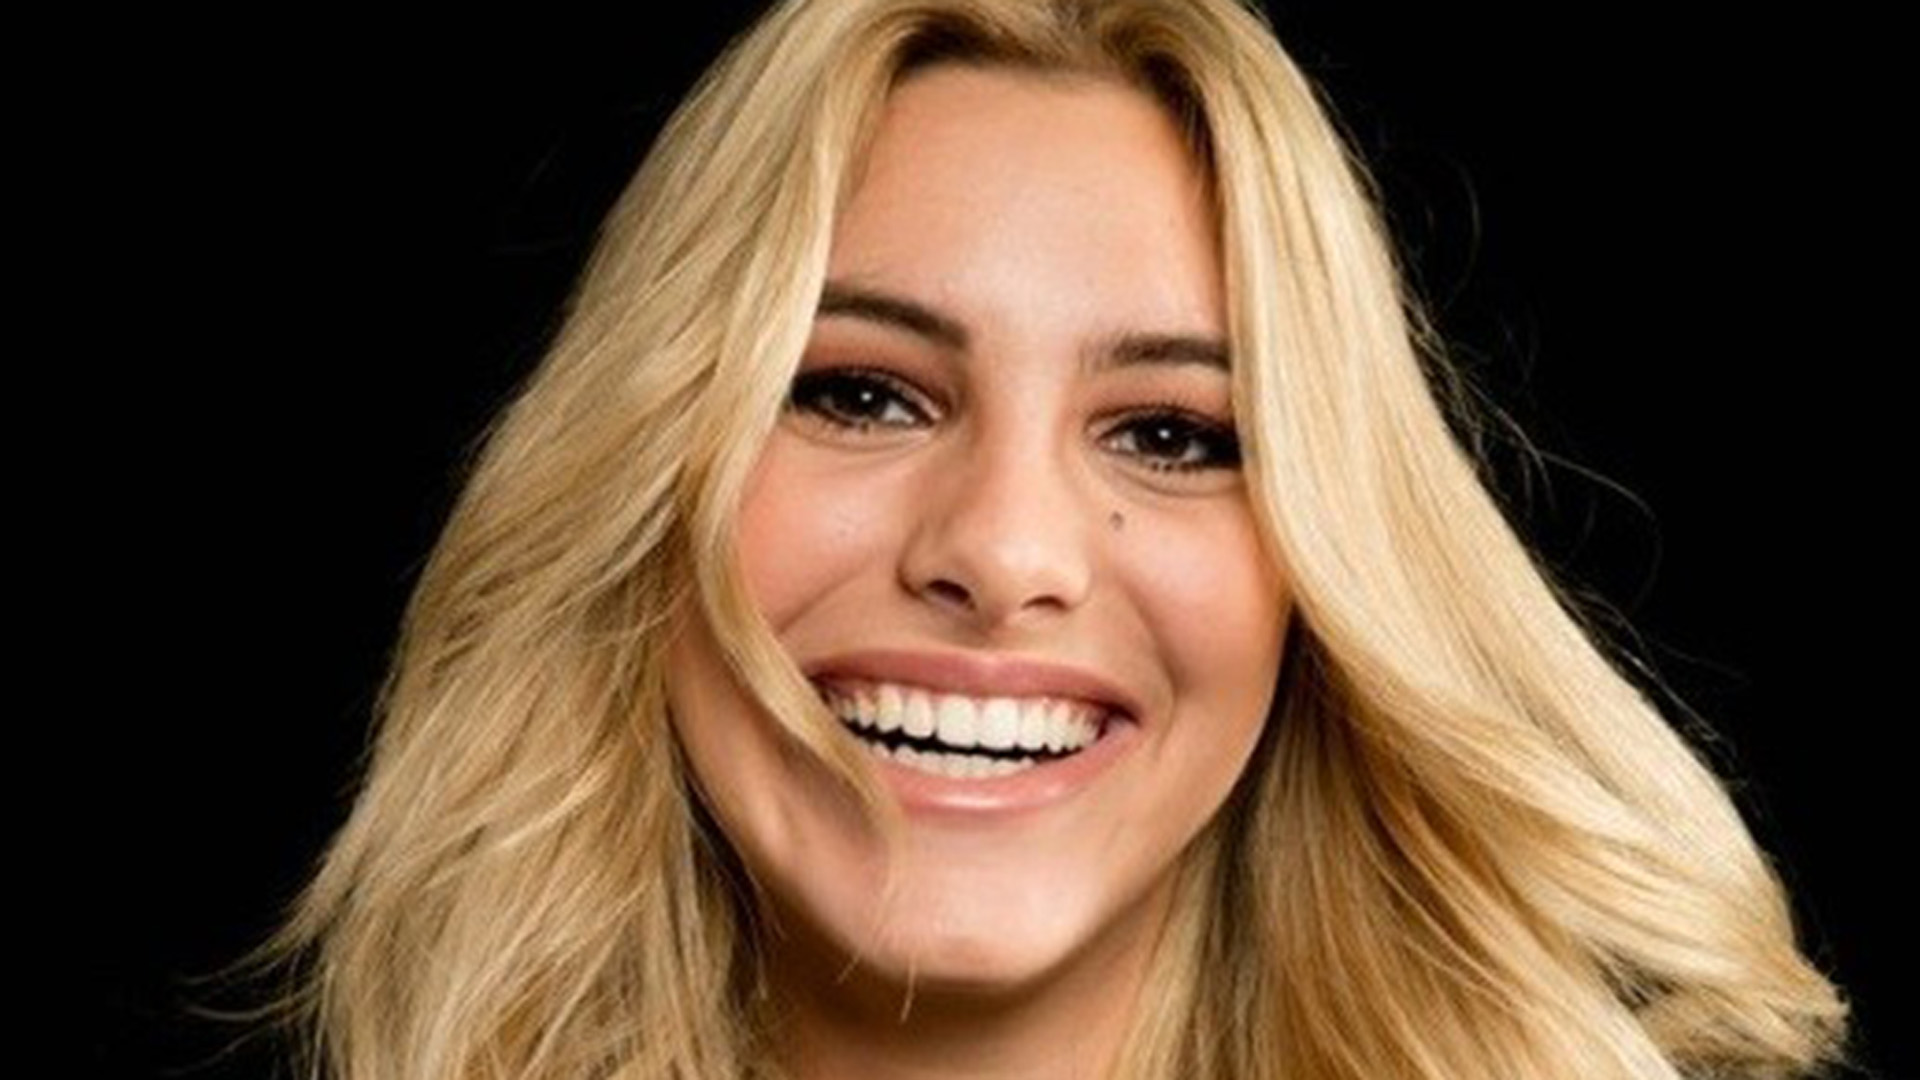 Lele Pons naked (76 photo), Topless, Bikini, Feet, cameltoe 2006